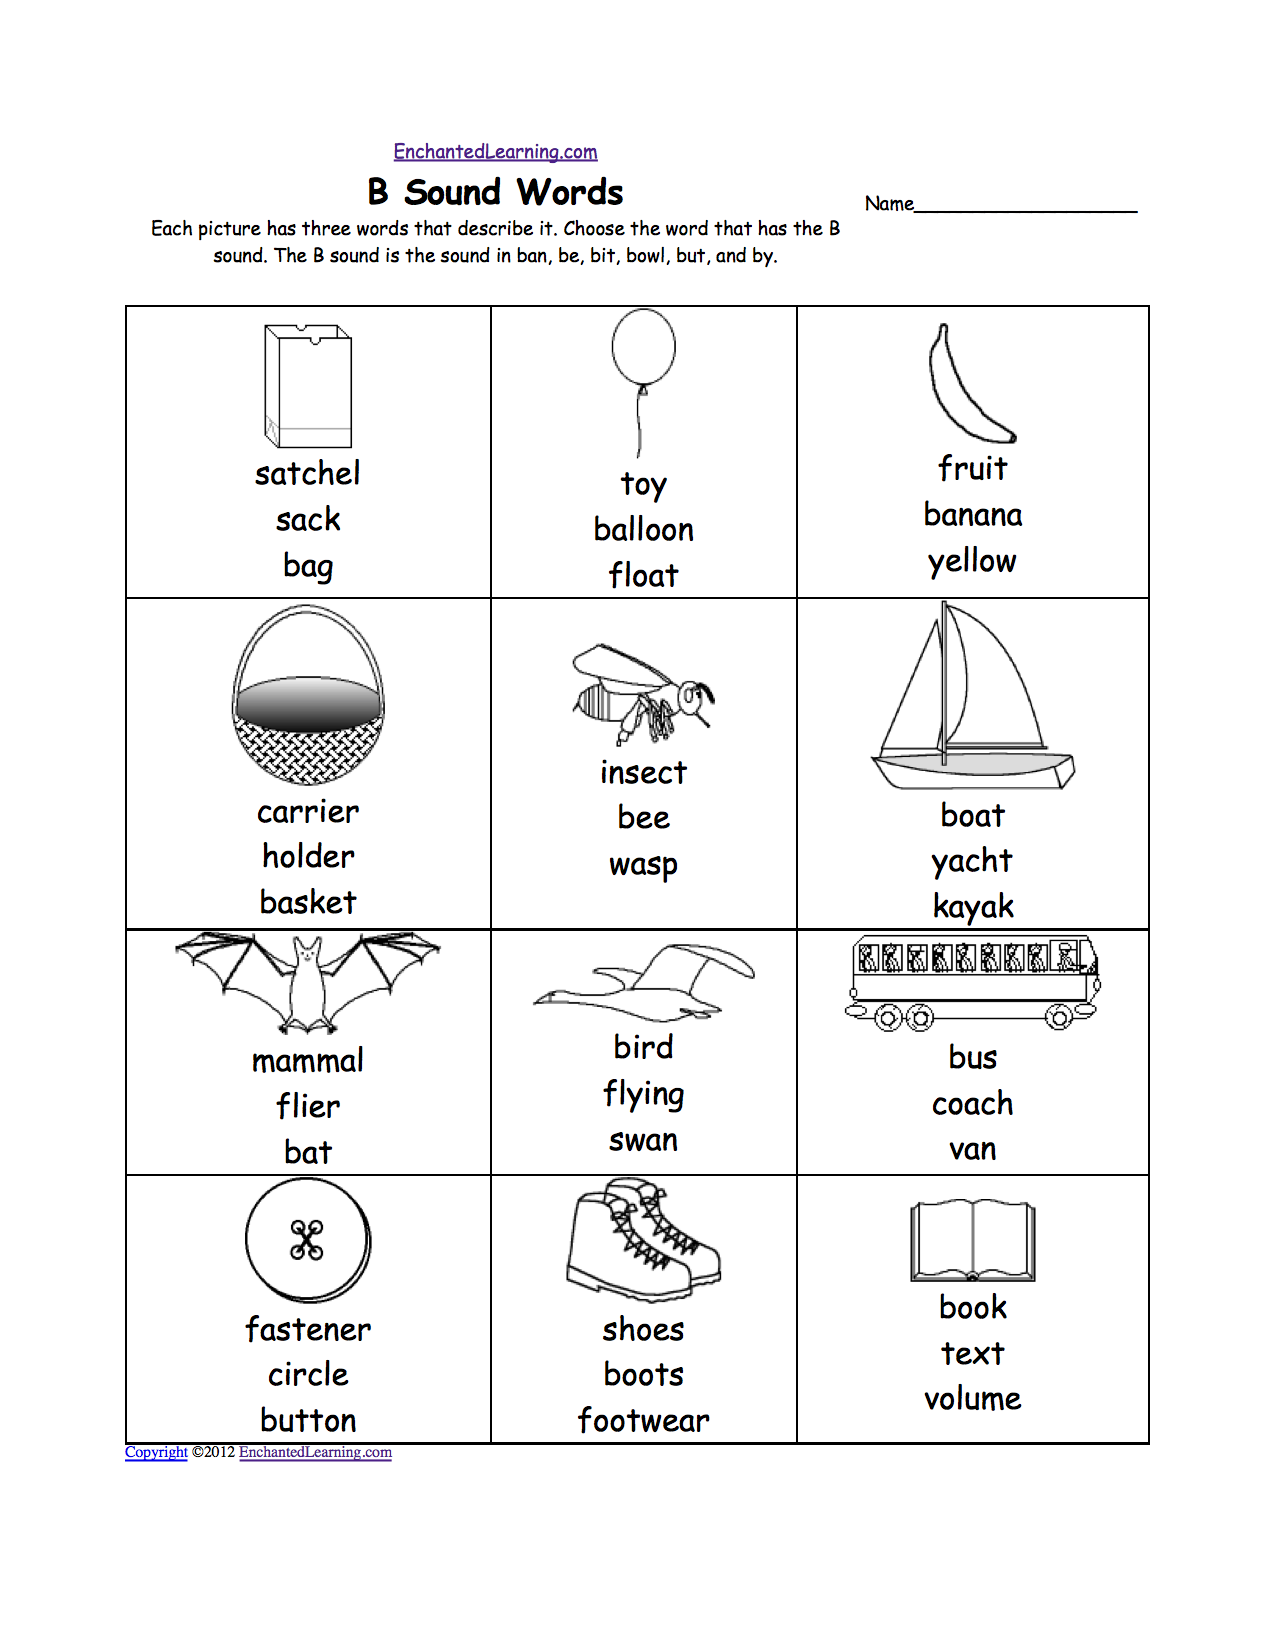 Weirdmailus  Personable Phonics Worksheets Multiple Choice Worksheets To Print  With Inspiring Quotbquot Sound Phonics Worksheet Multiple Choice Each Picture Has Three Words That Describe It Choose The Word That Has A Quotbquot Sound The Quotbquot Sound Is The Sound  With Enchanting Osmosis Worksheet Biology Also English Articles Worksheet In Addition Self Assessment Worksheets And Pronoun Worksheets For Grade  As Well As Number Sense Worksheets Rd Grade Additionally Addition With Unlike Denominators Worksheets From Enchantedlearningcom With Weirdmailus  Inspiring Phonics Worksheets Multiple Choice Worksheets To Print  With Enchanting Quotbquot Sound Phonics Worksheet Multiple Choice Each Picture Has Three Words That Describe It Choose The Word That Has A Quotbquot Sound The Quotbquot Sound Is The Sound  And Personable Osmosis Worksheet Biology Also English Articles Worksheet In Addition Self Assessment Worksheets From Enchantedlearningcom